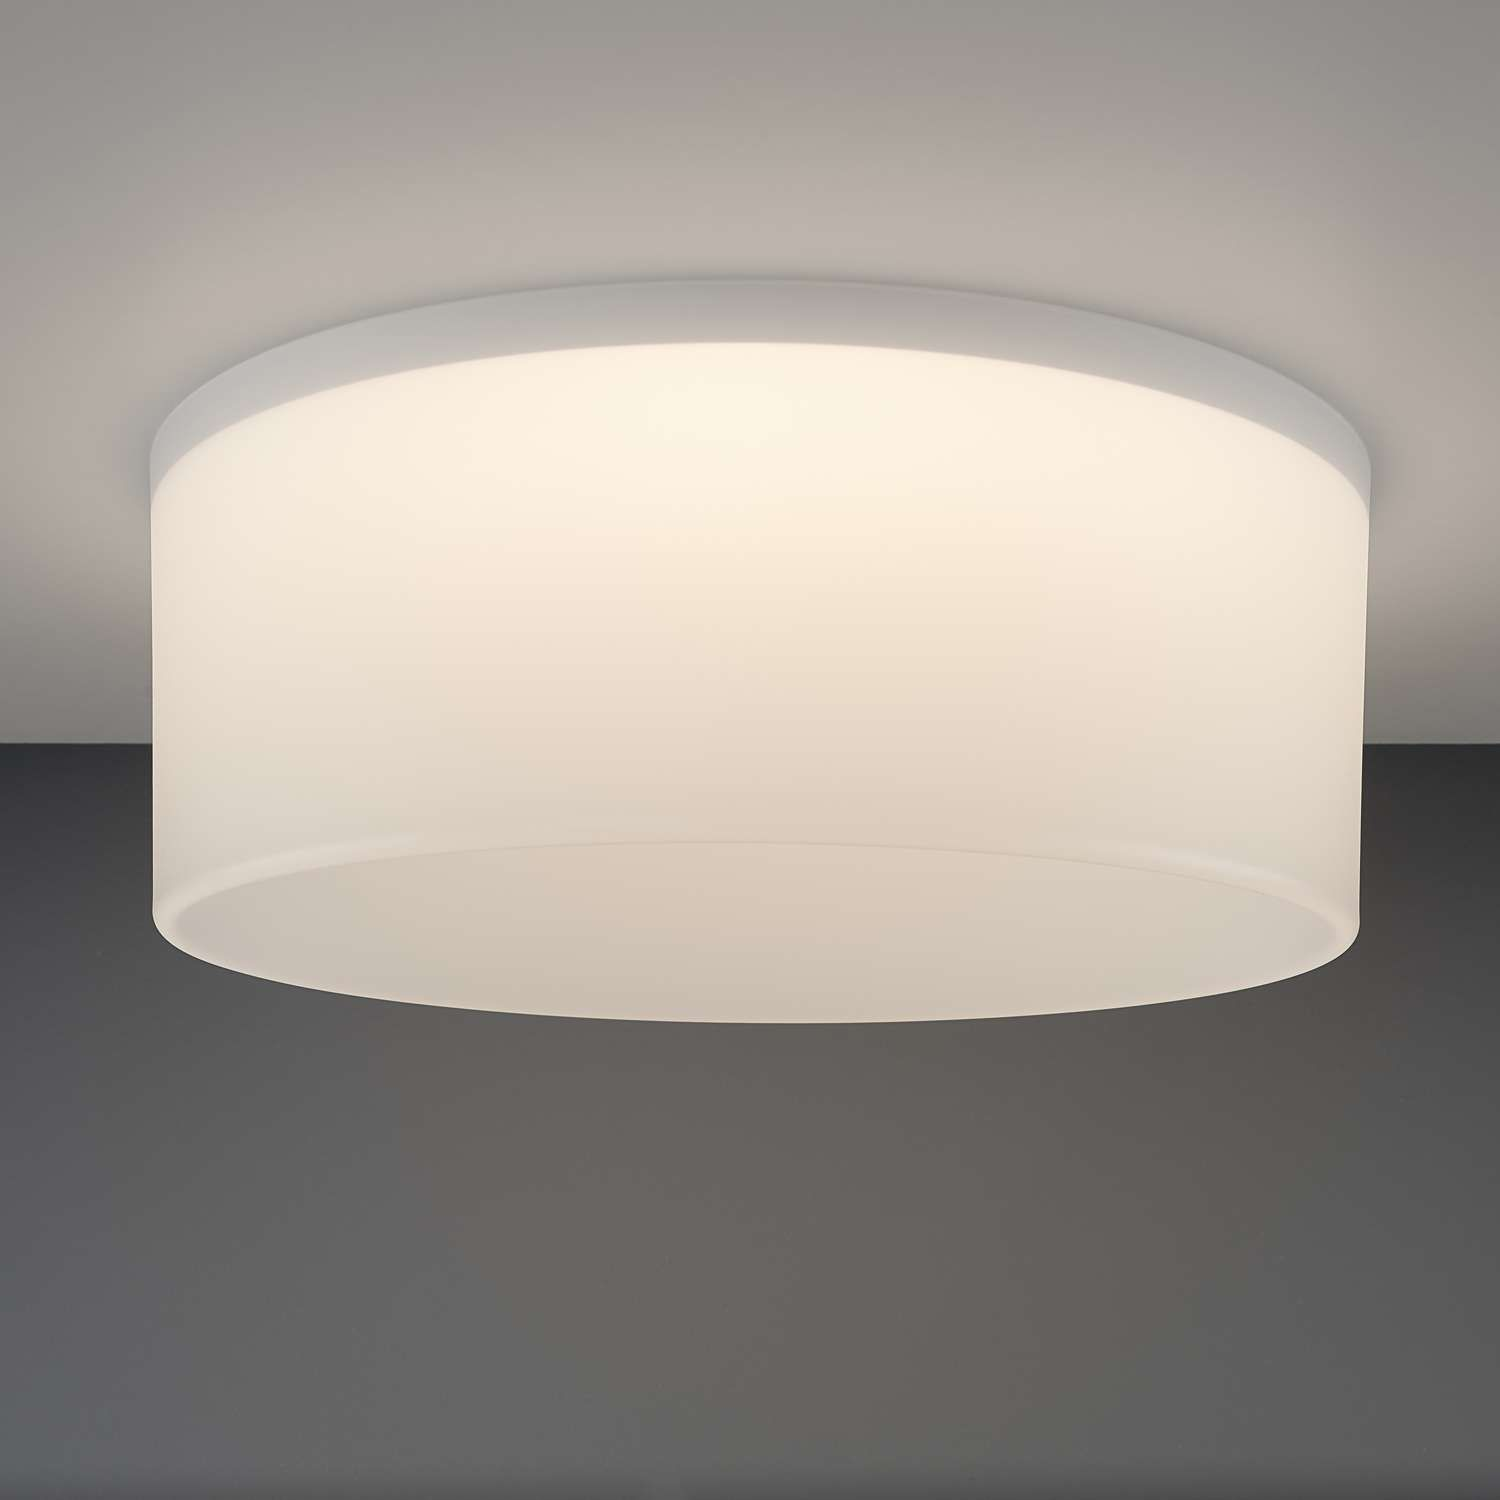 Round Light Fixture Mounting Plate